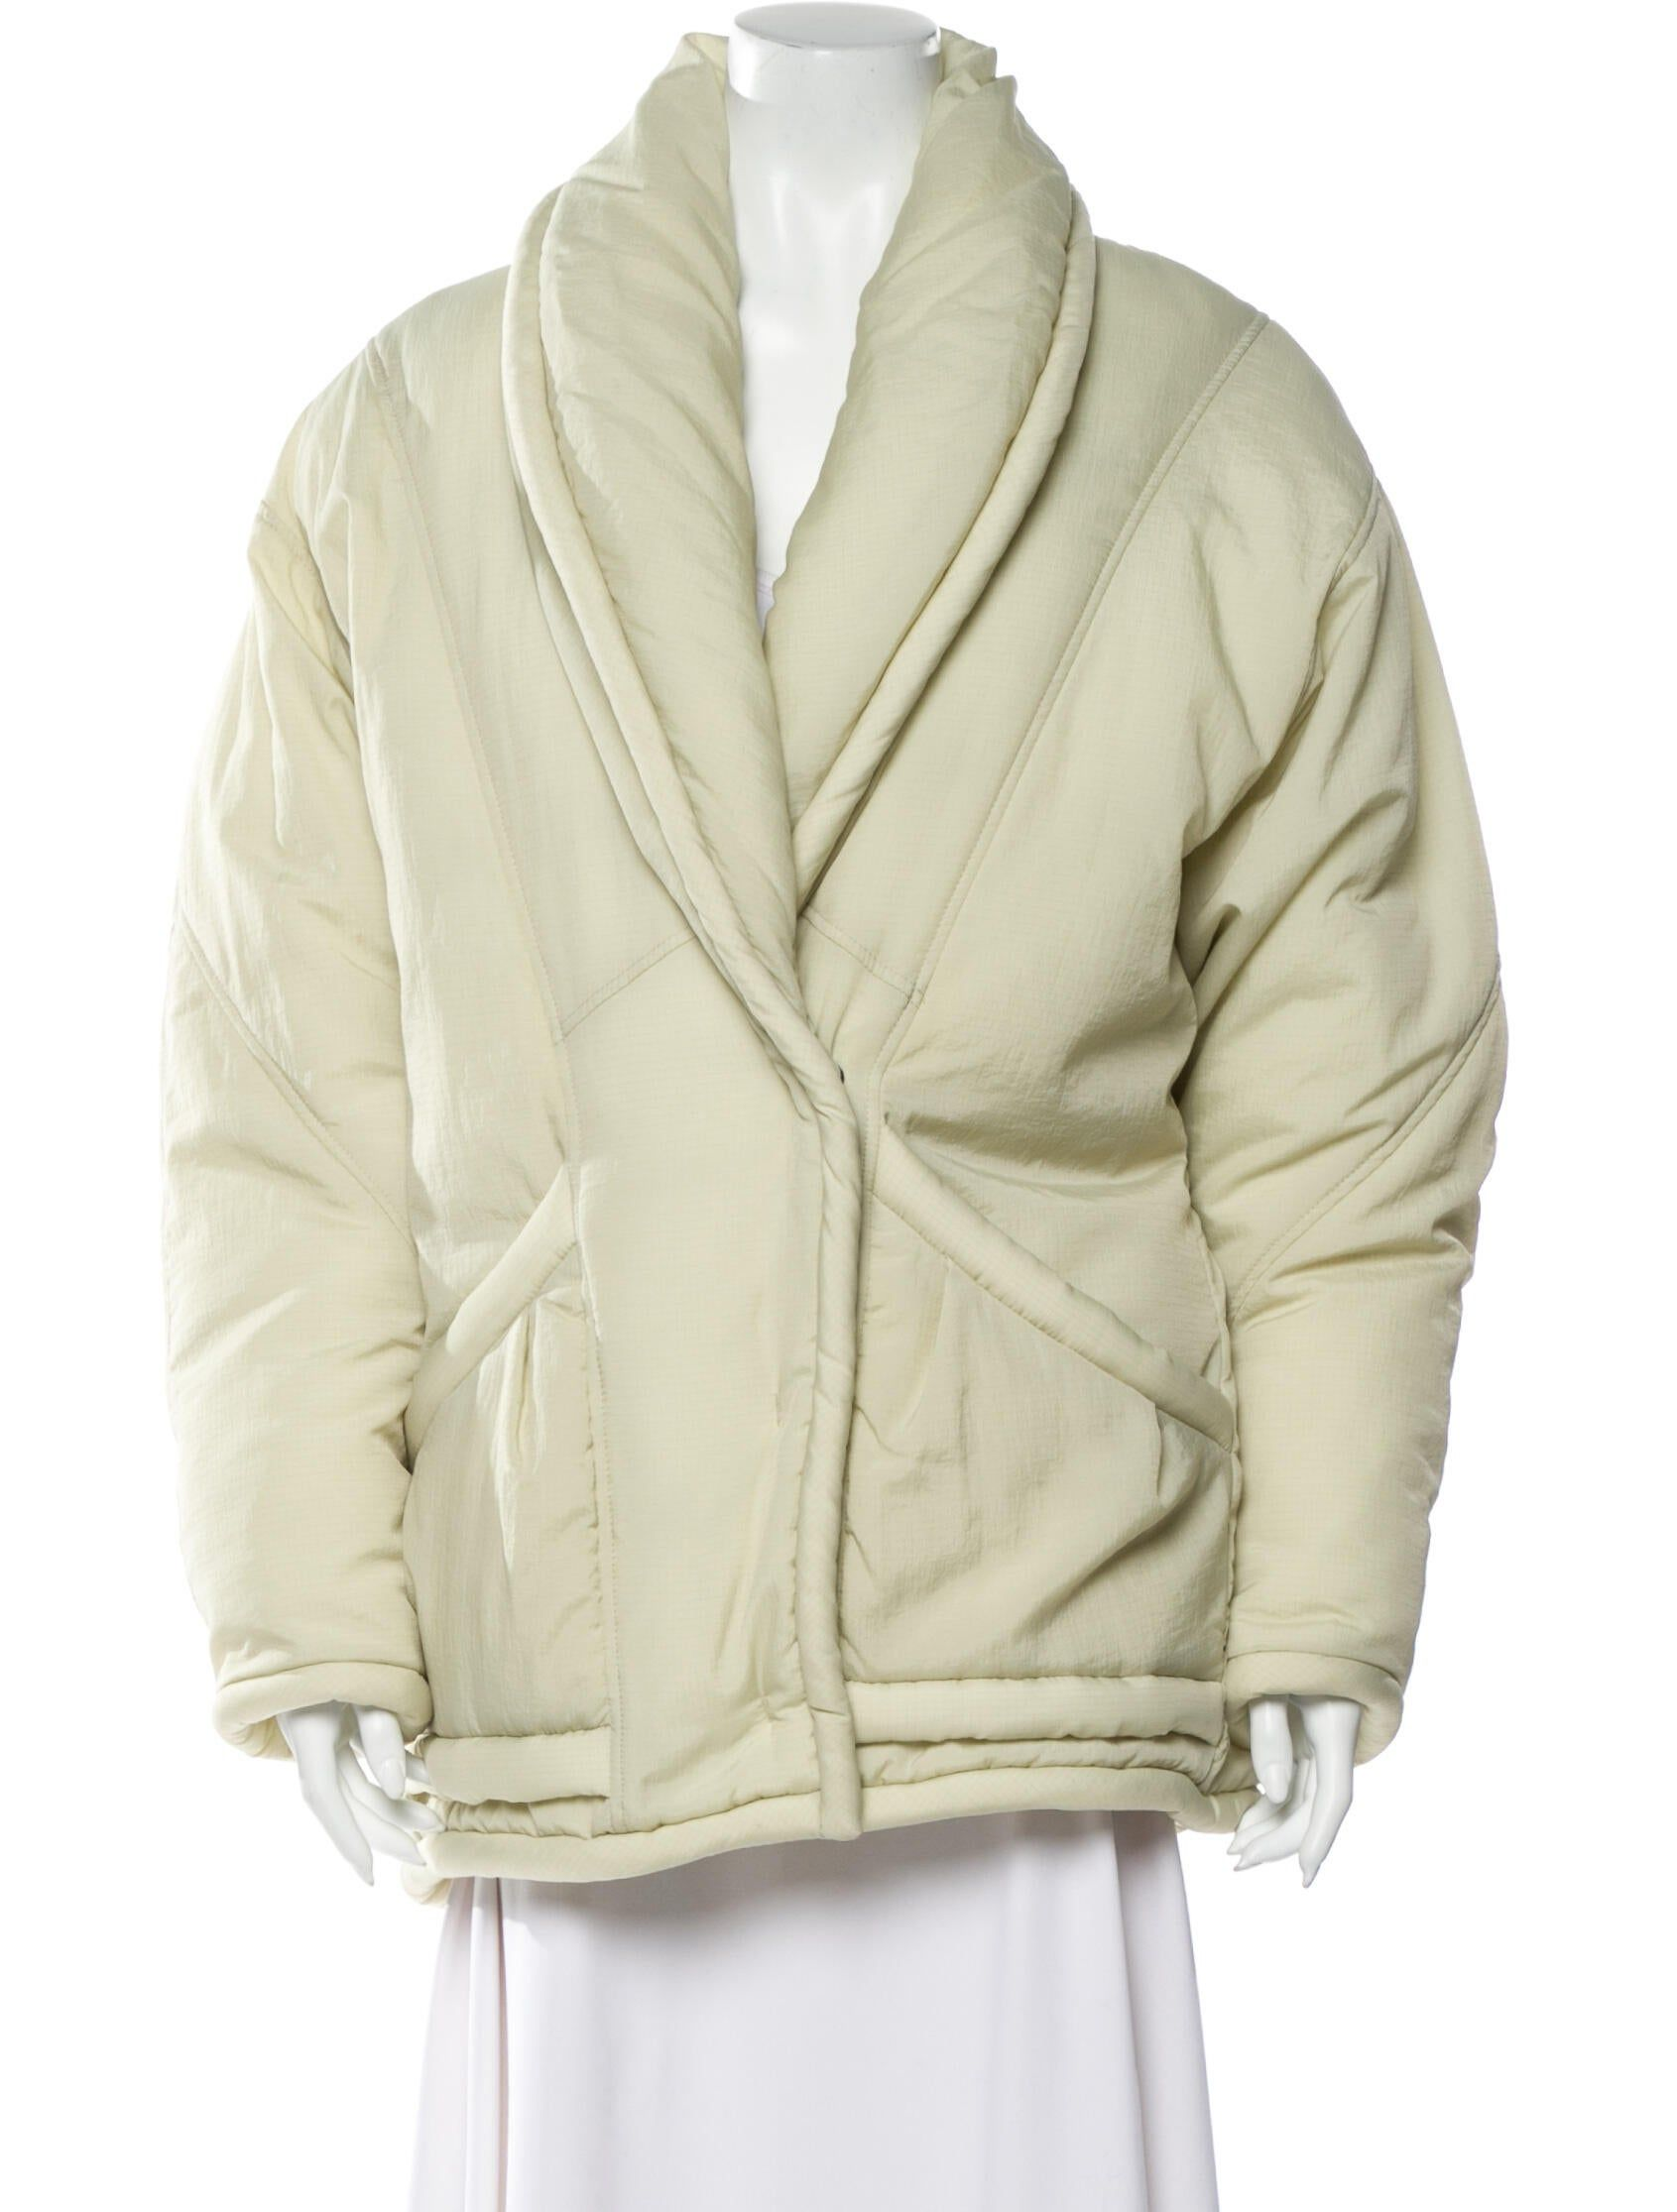 Creme Isabel Marant Puffer Coat With Shawl Collar Dual Seam Pockets At Waist And Concealed Snap Closures At Front Puffer Coat Coat Clothes [ 2231 x 1691 Pixel ]